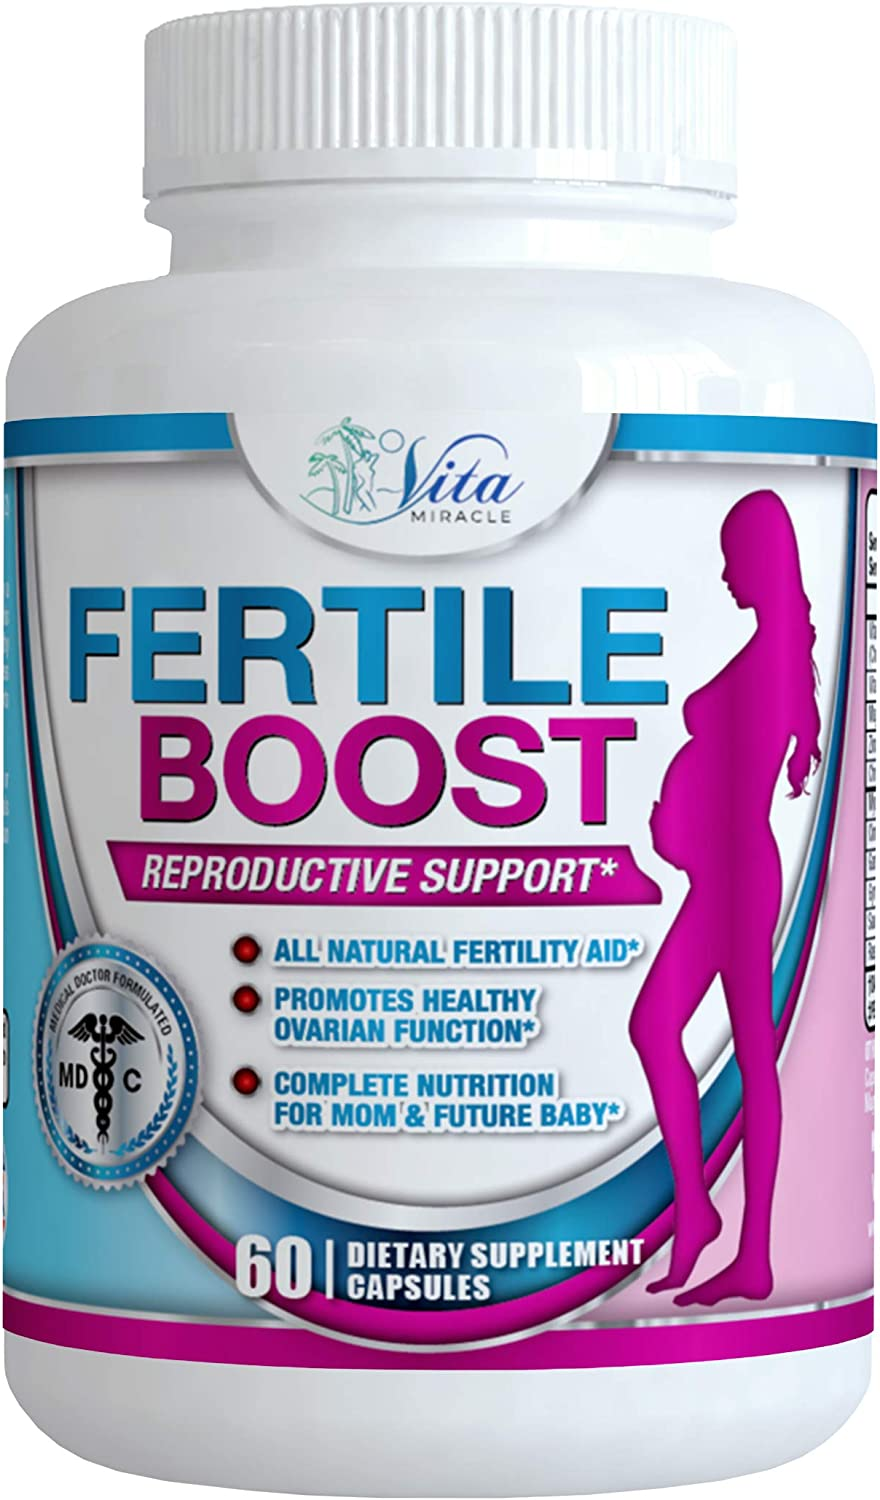 Dr Formulated Fertility Supplements for Women – with Myo Inositol Pre Pregnancy Fertility Pills PCOS Supplement Aid Ovulation and Regulate Cycle to Help Conception and Get Pregnant Fast